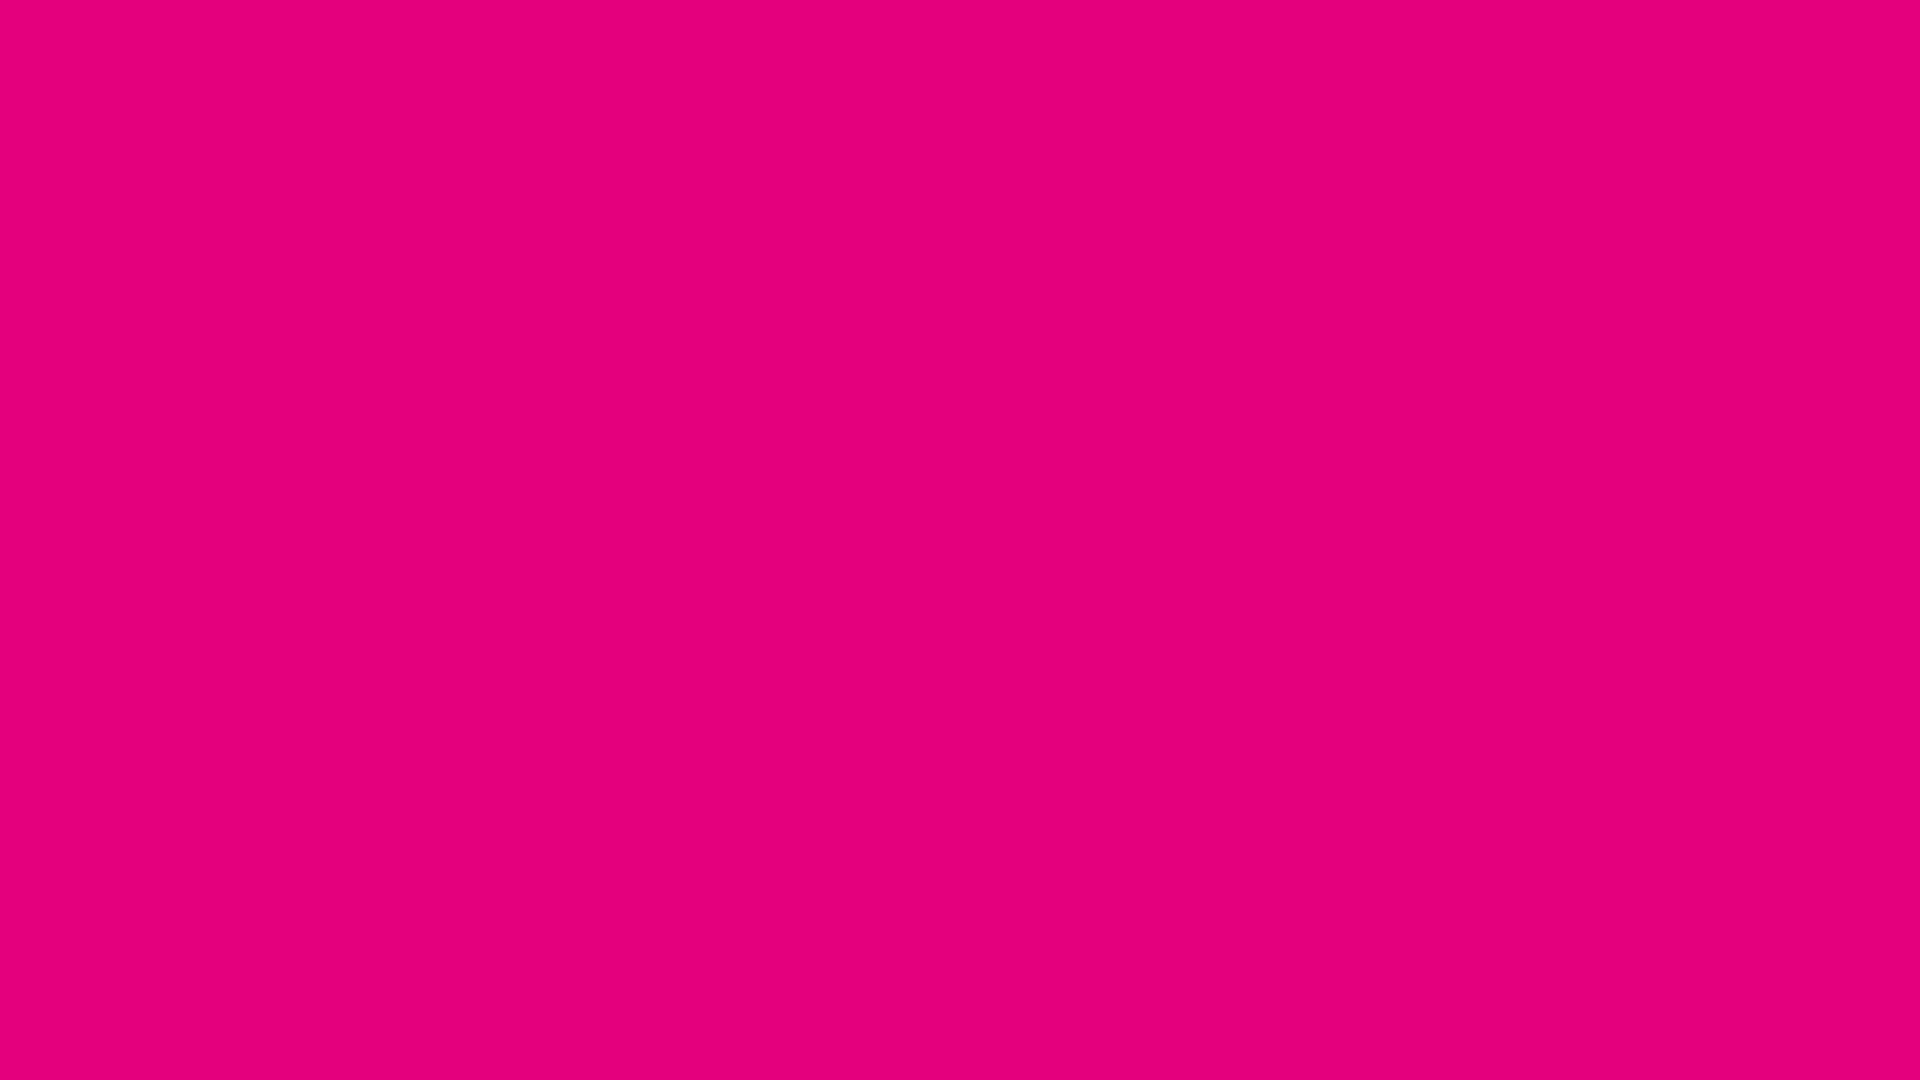 1920x1080 Mexican Pink Solid Color Background